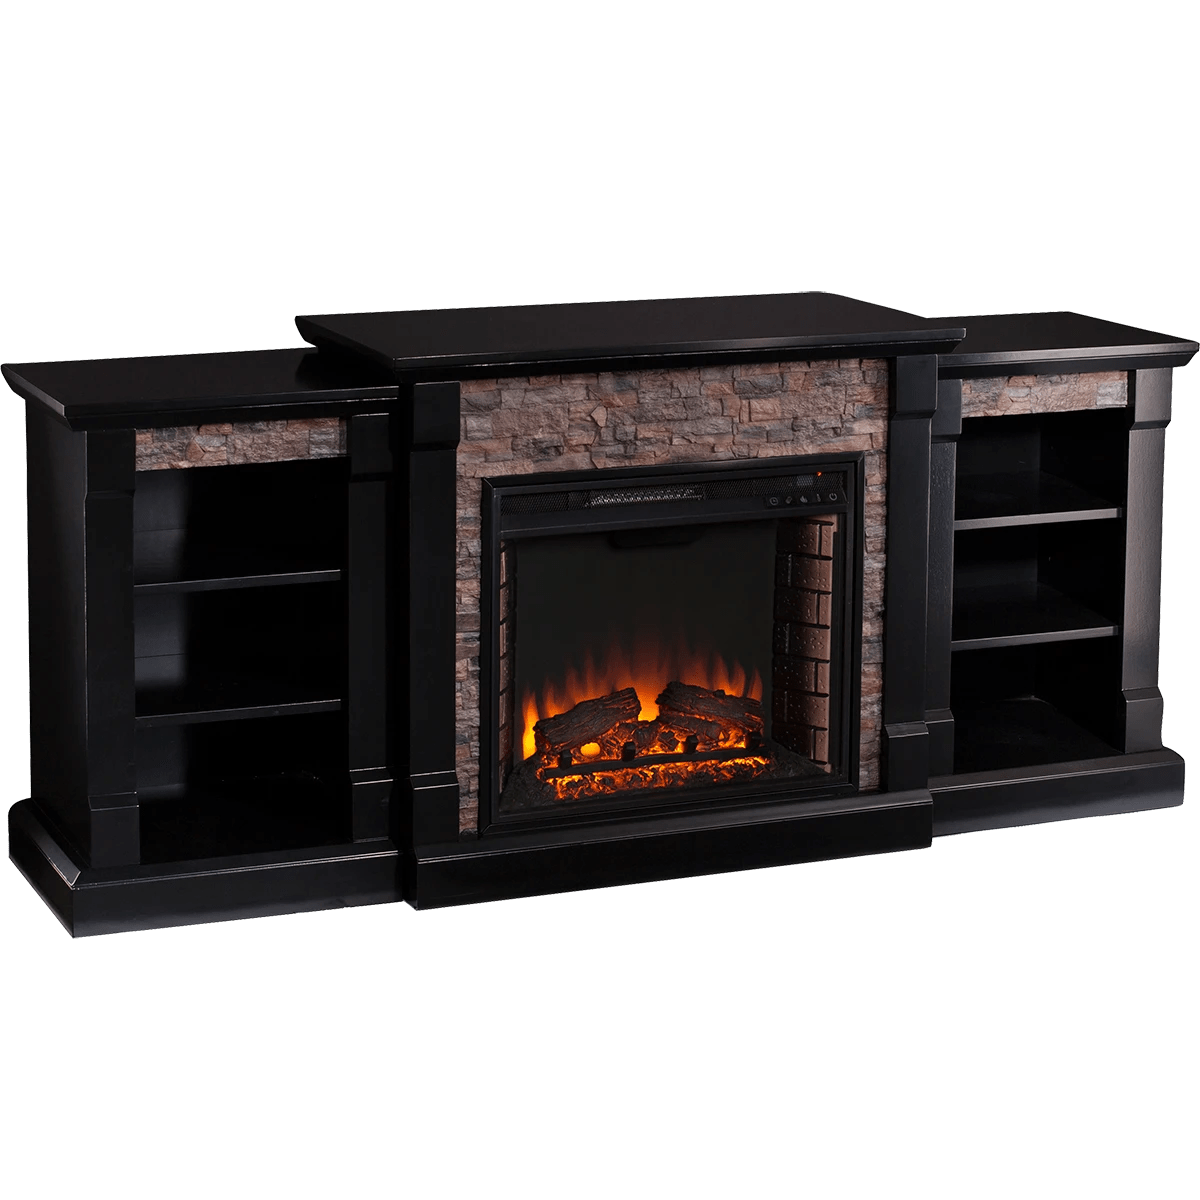 Small Fireplace Screens Under 30 Wide Southern Enterprises Gallatin Faux Stone Fireplace